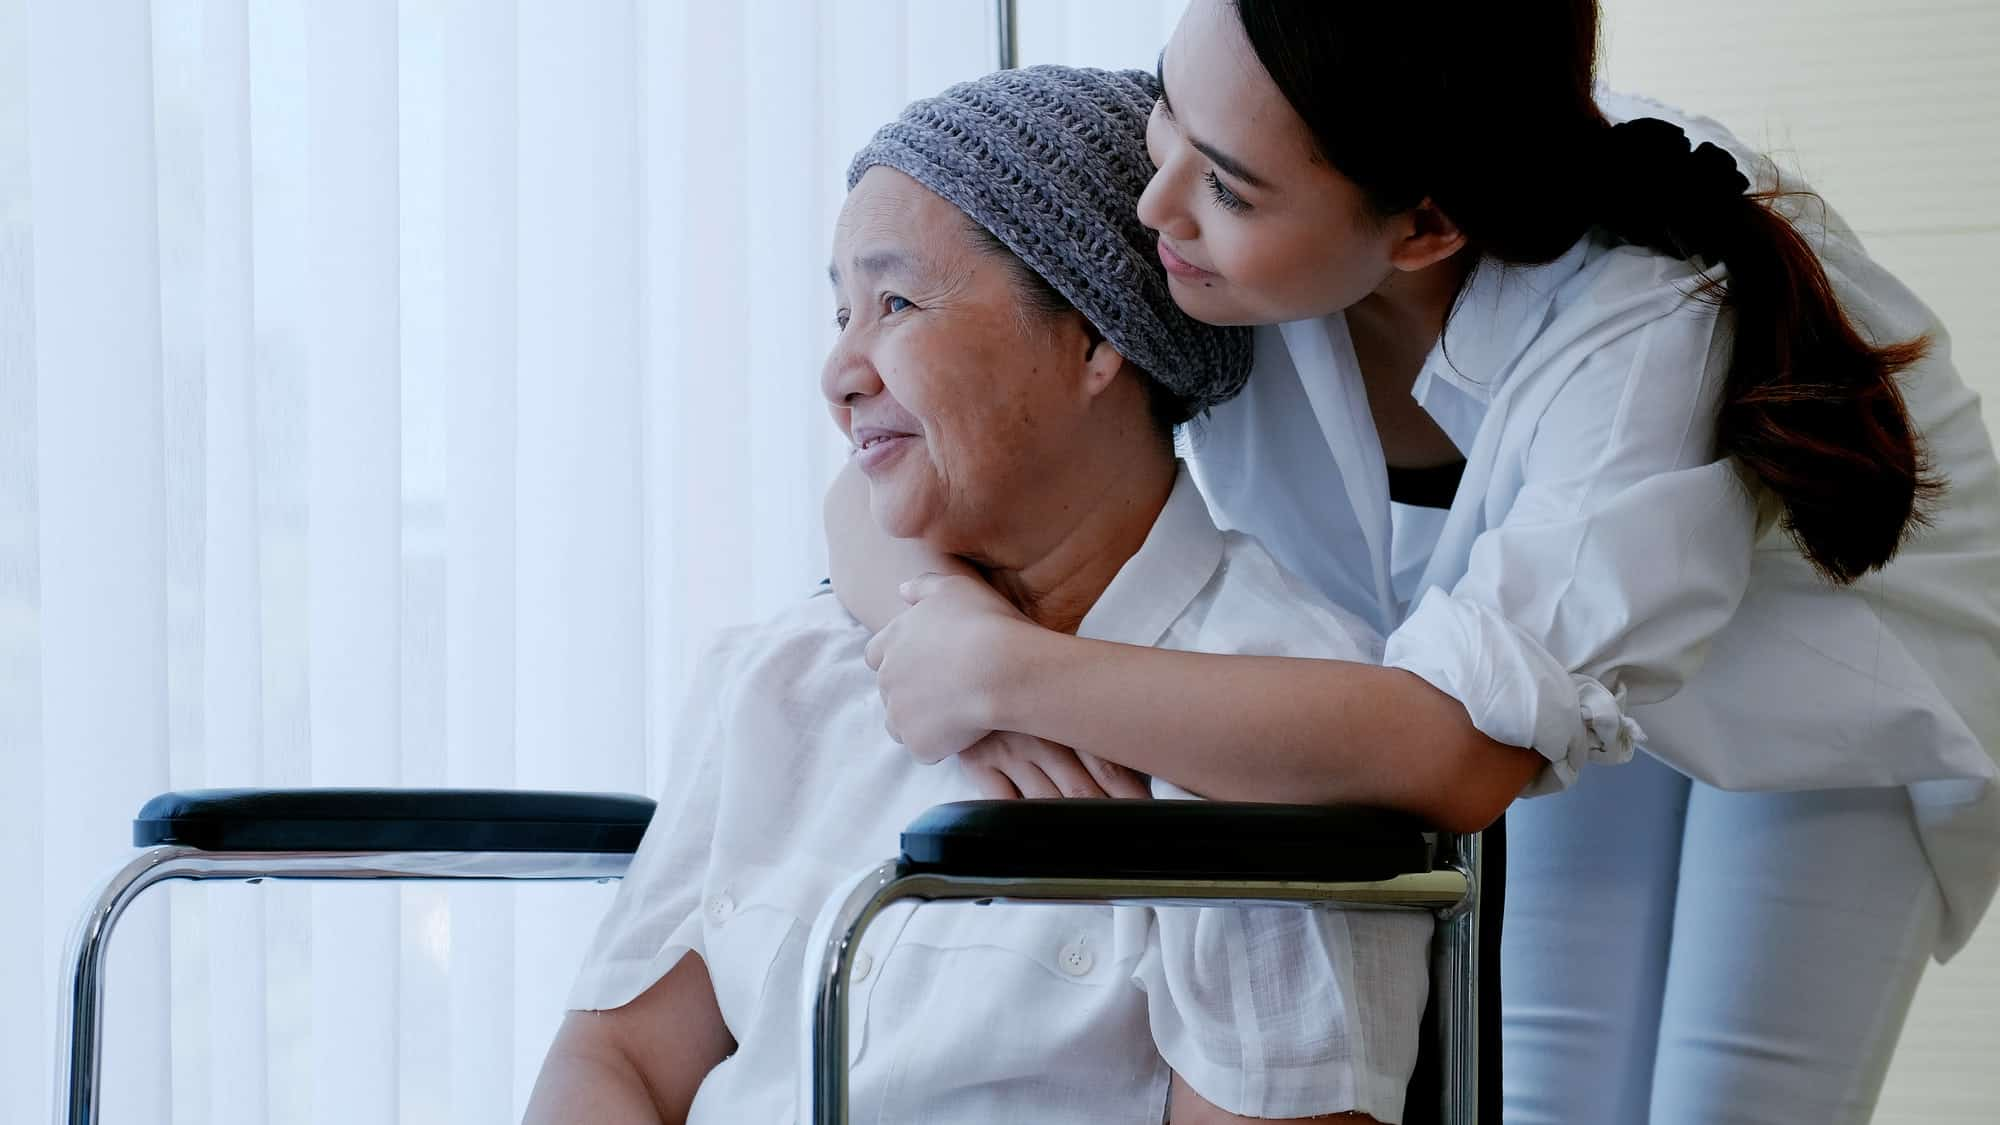 daughter encourages and comforts a mother with cancer during hospitalization.